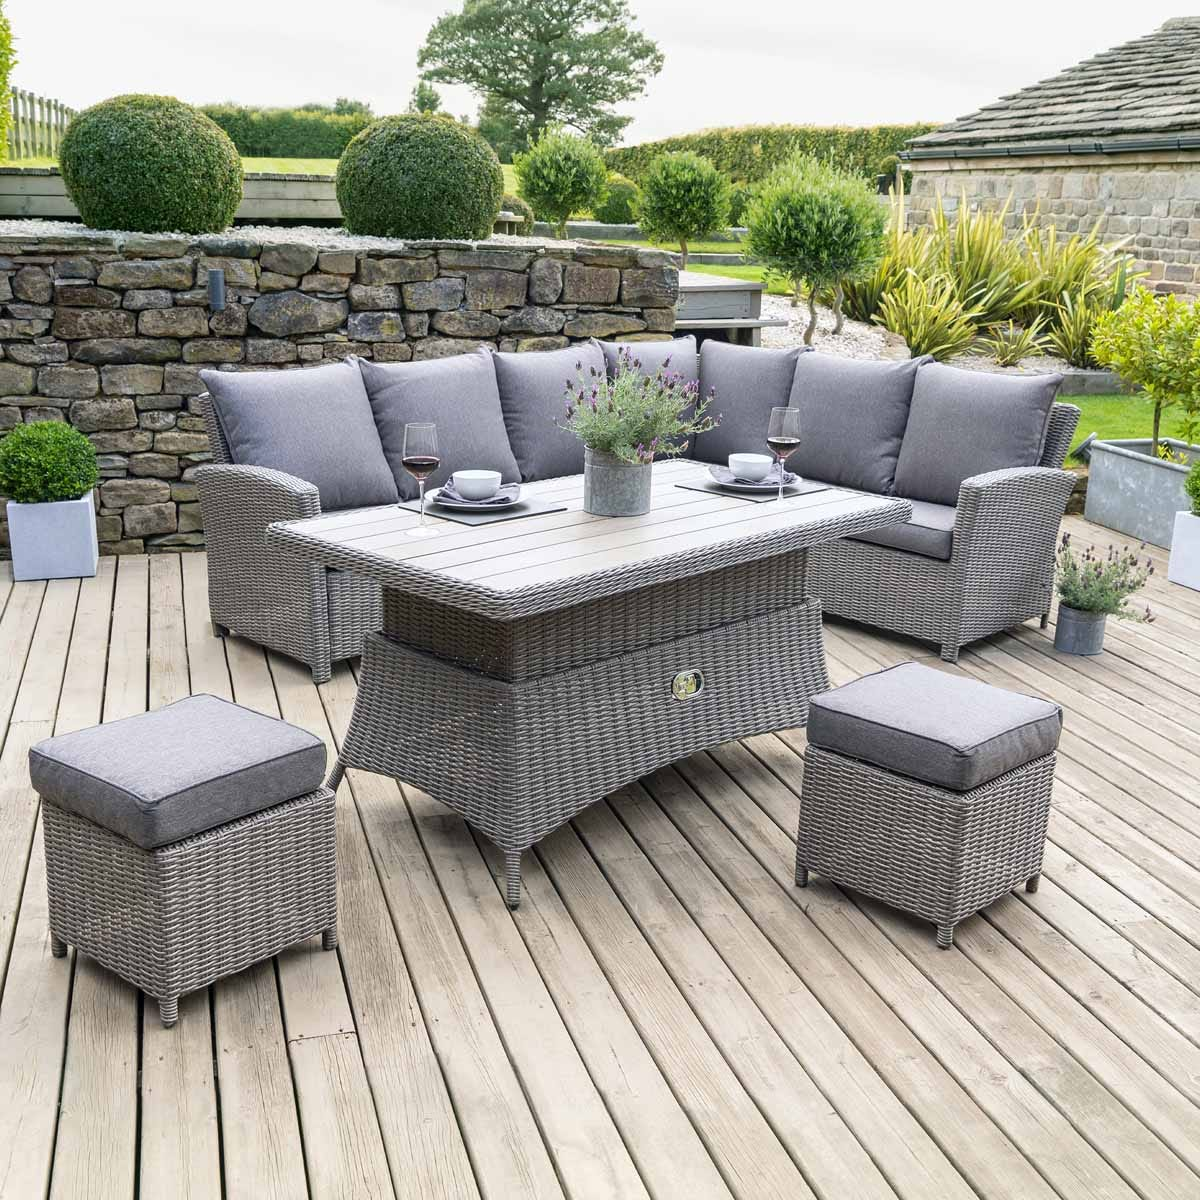 Pacific Lifestyle Barbados Relaxed Dining Corner Set with Adjustable Table - Slate Grey